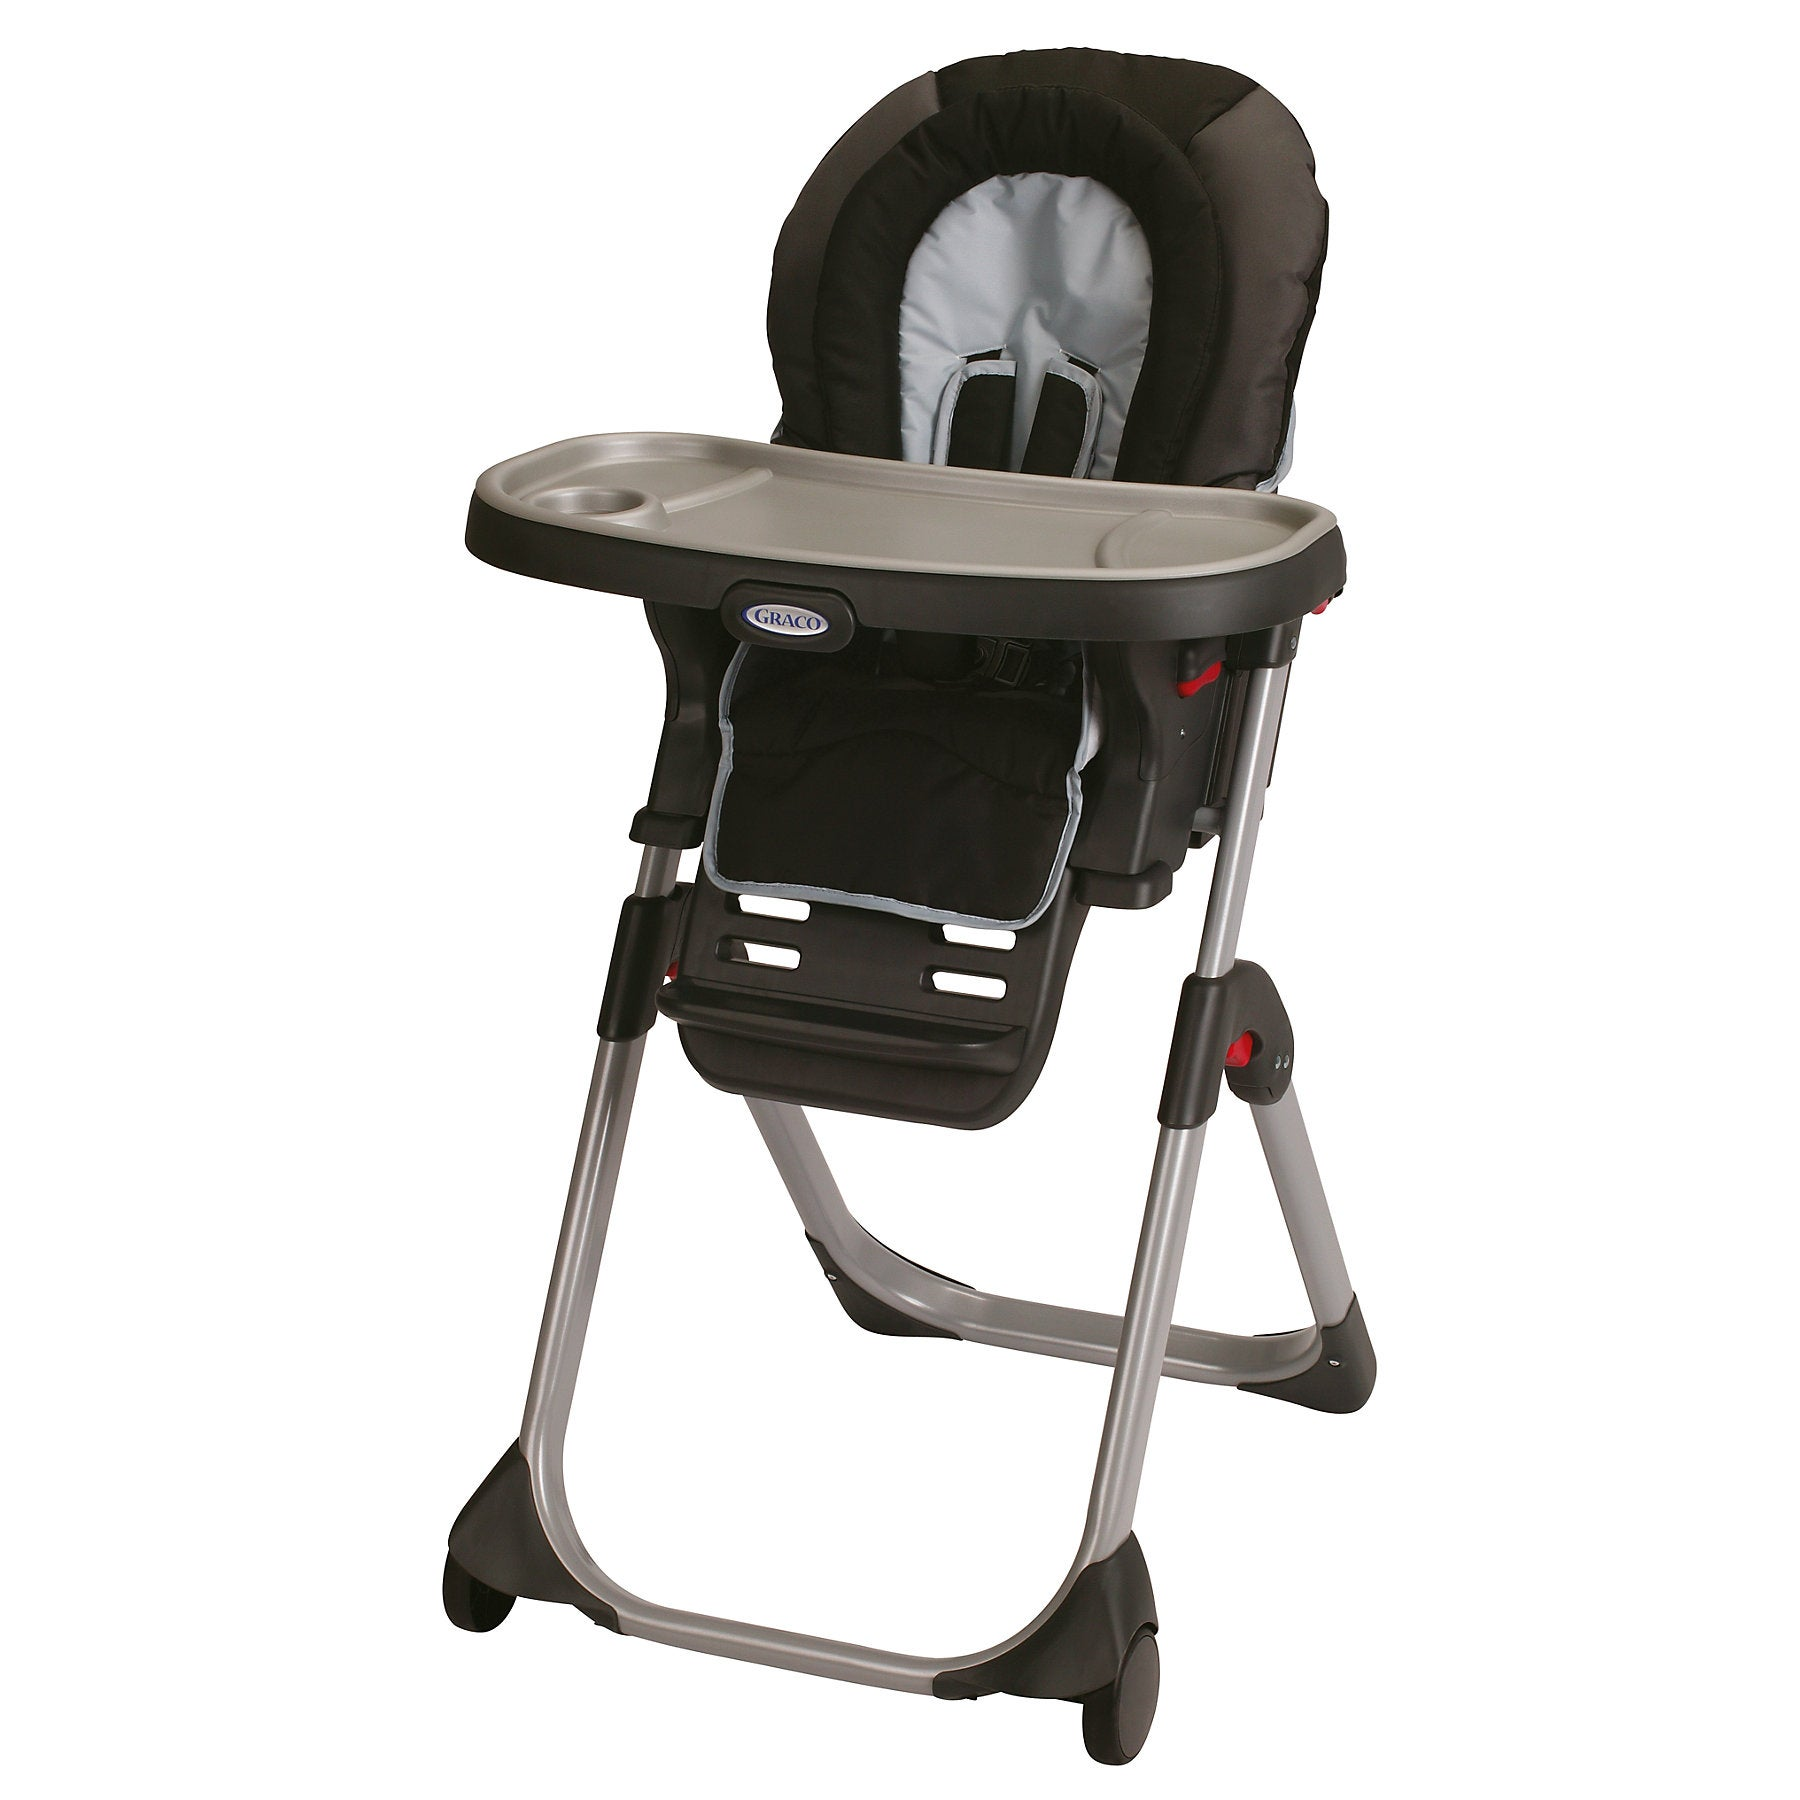 Graco Duo Diner Highchair in Metropolis (1852648), Silver...